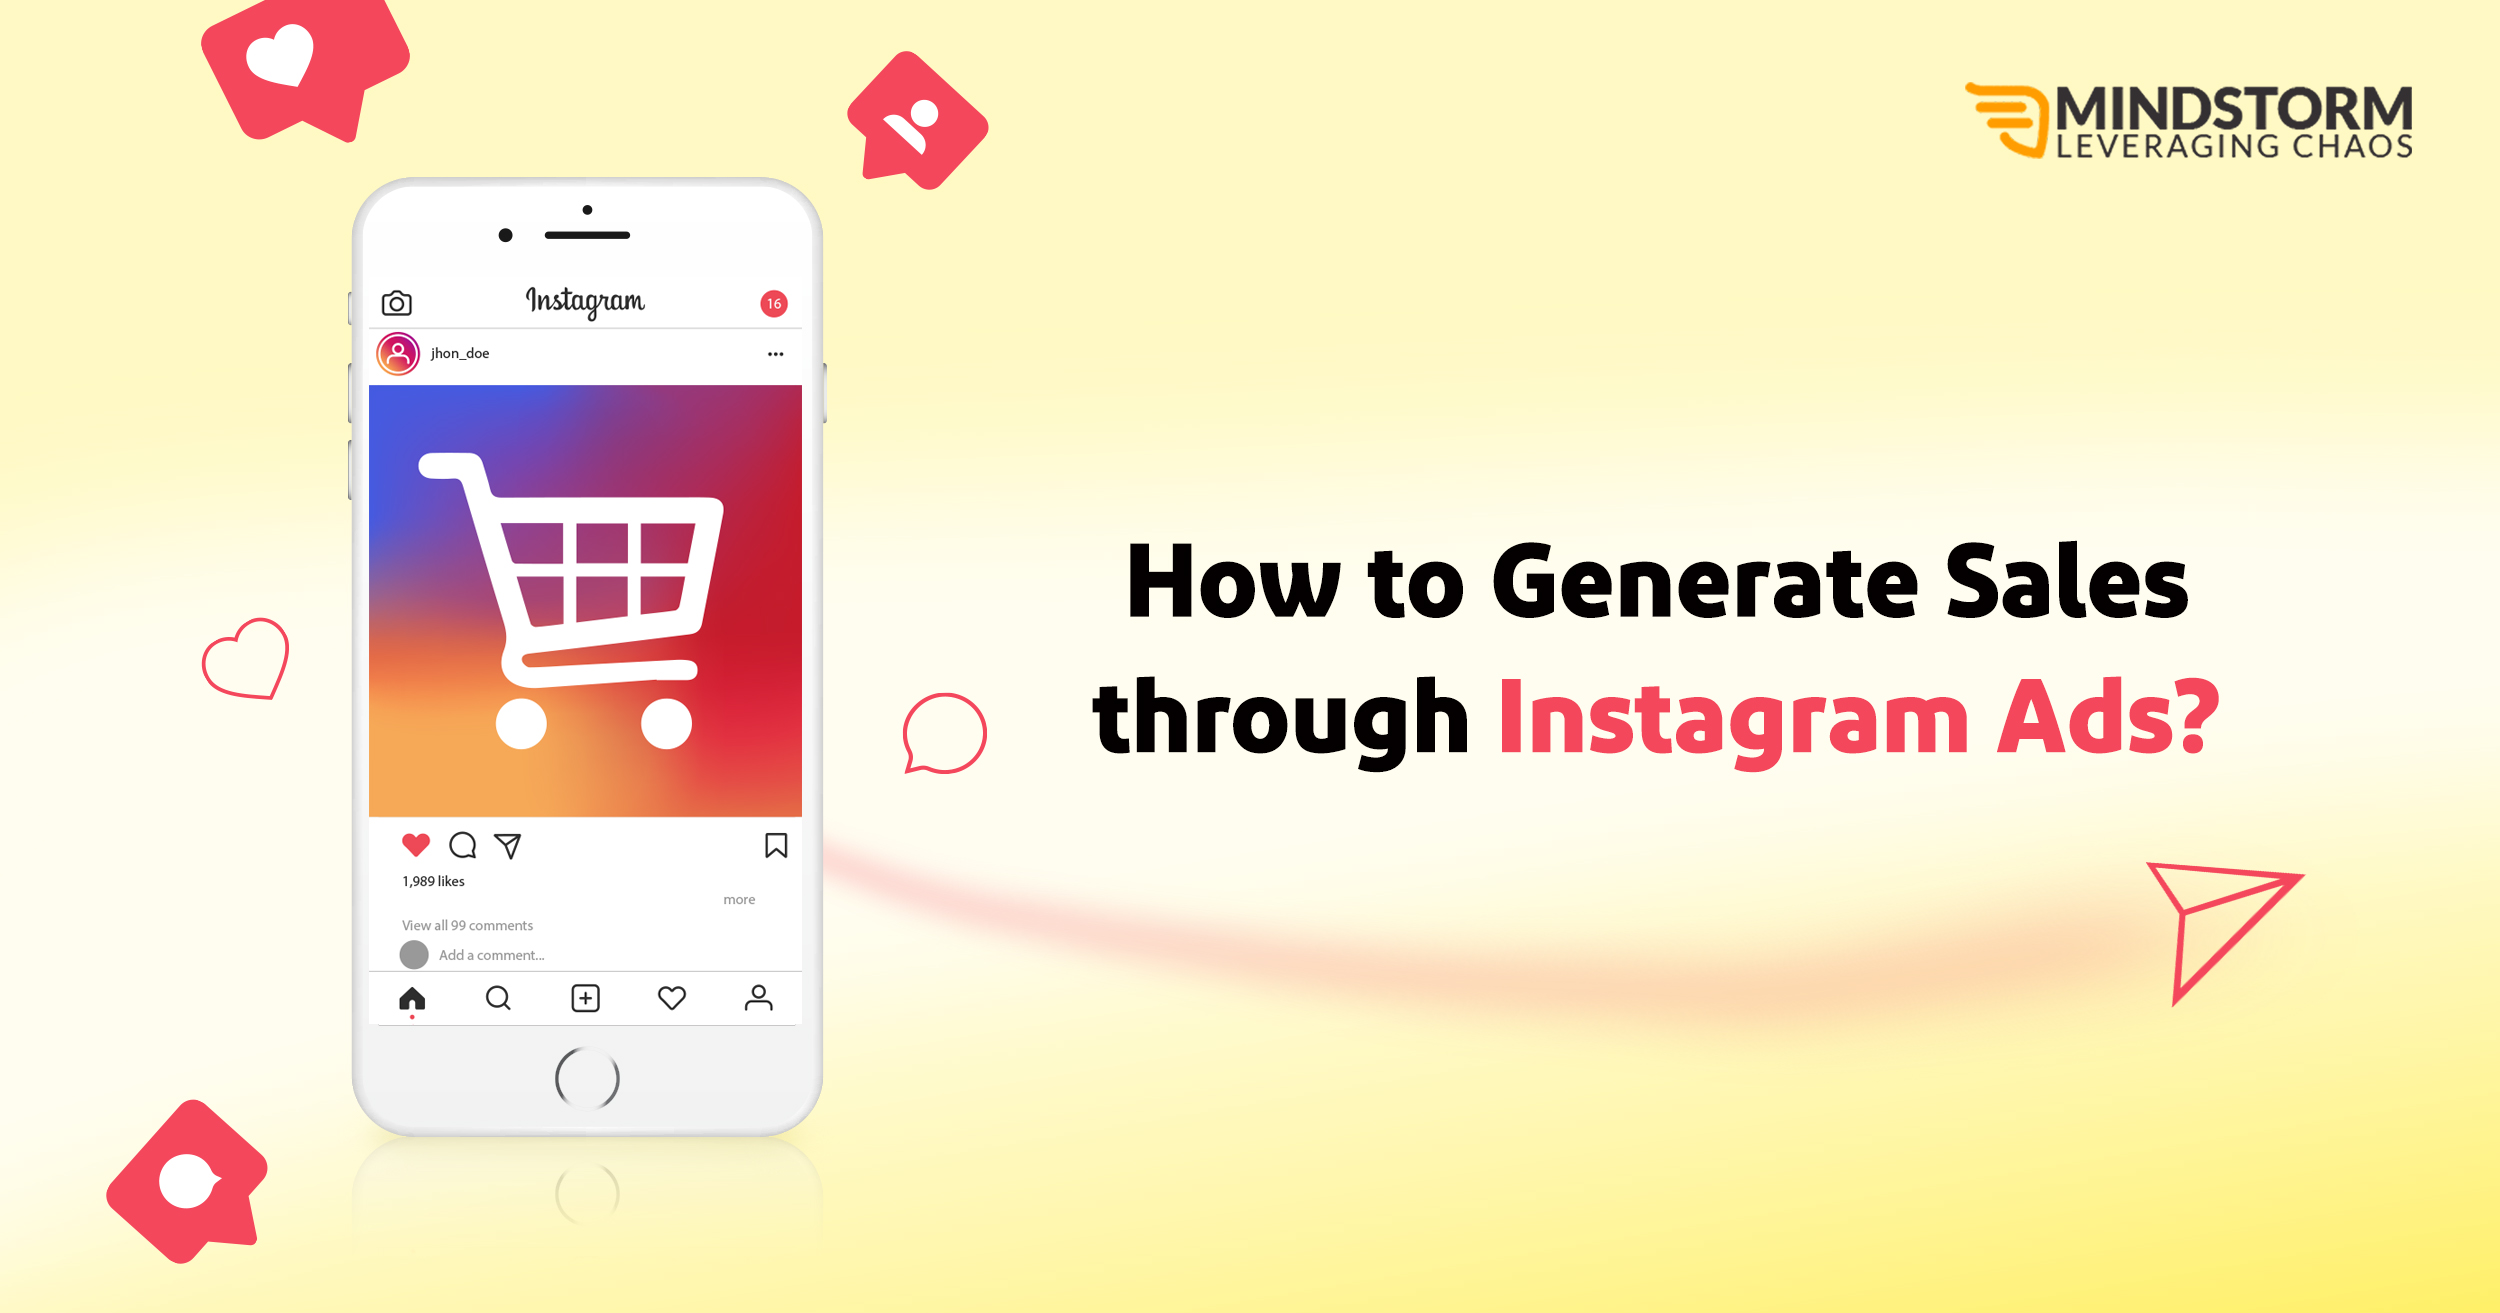 How to Generate Sales through Instagram Ads?